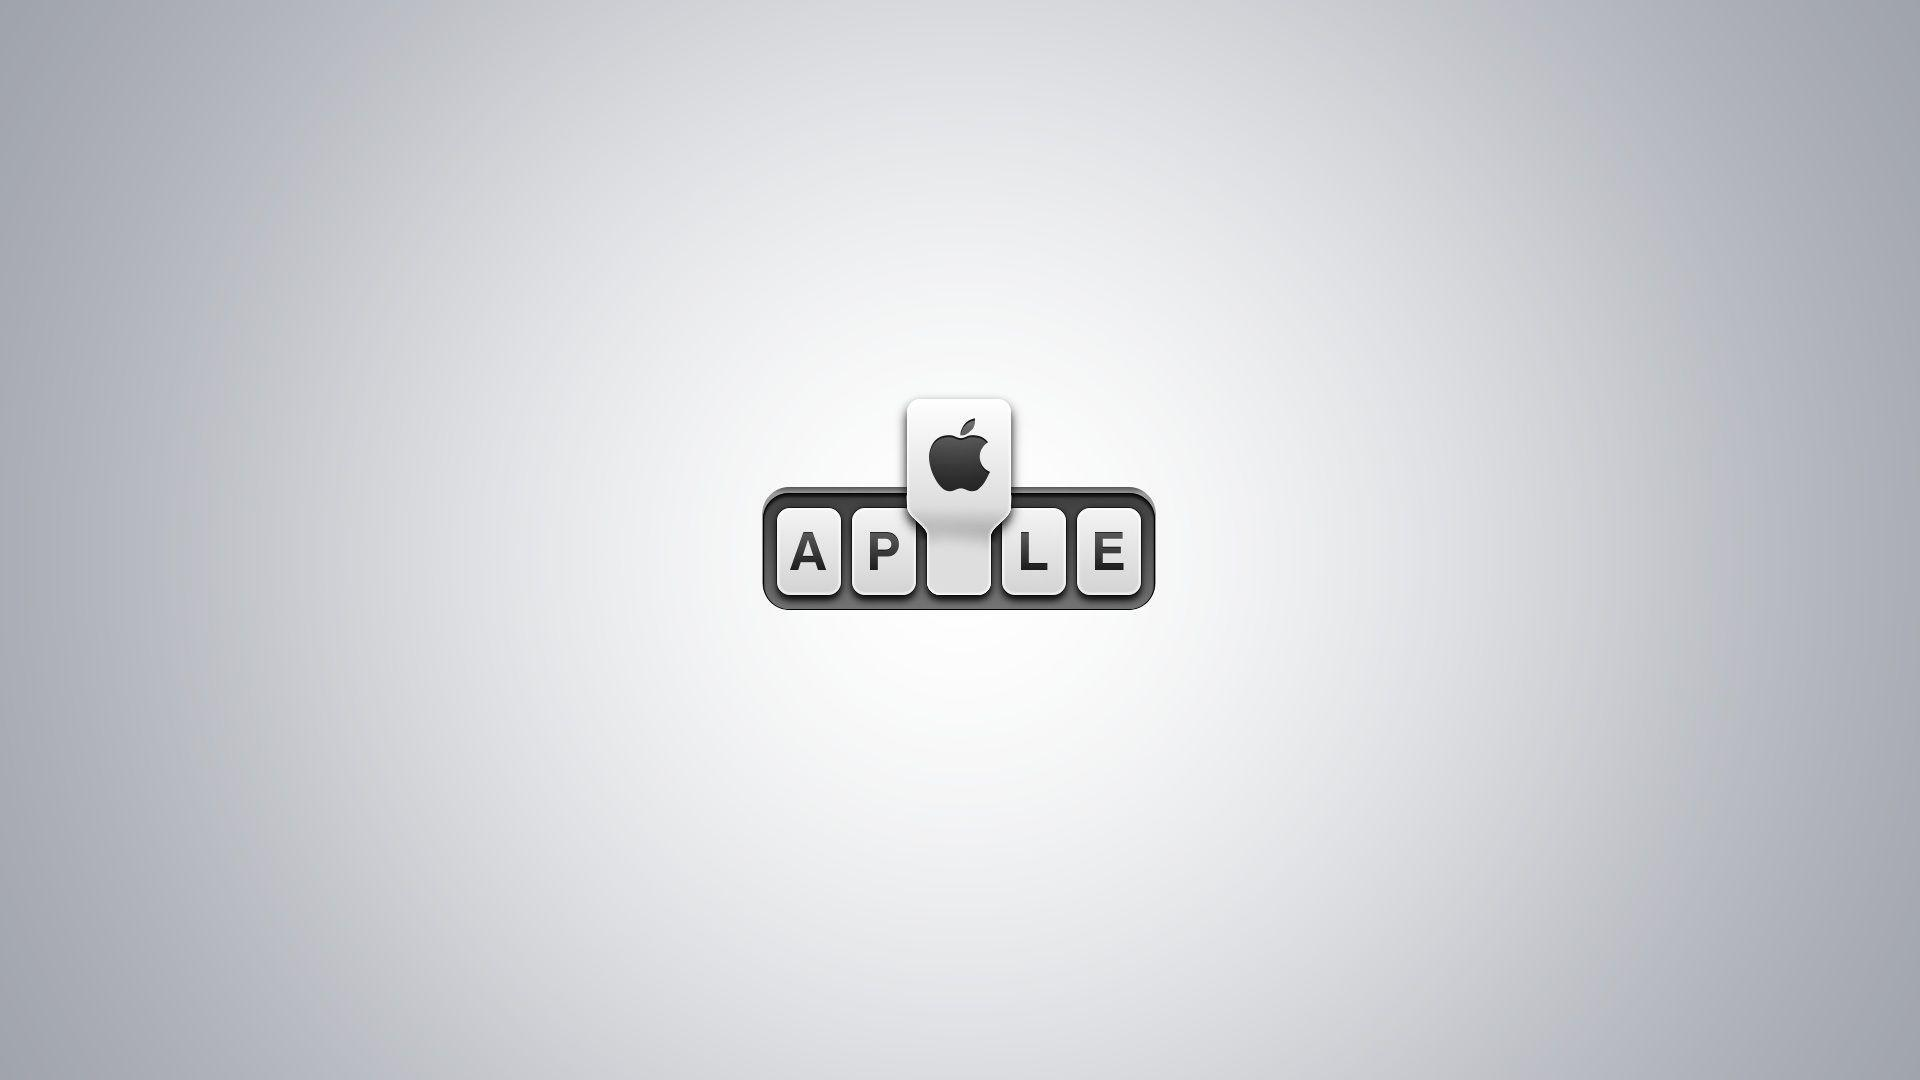 apple desktop wallpapers hd 26 everything idevice